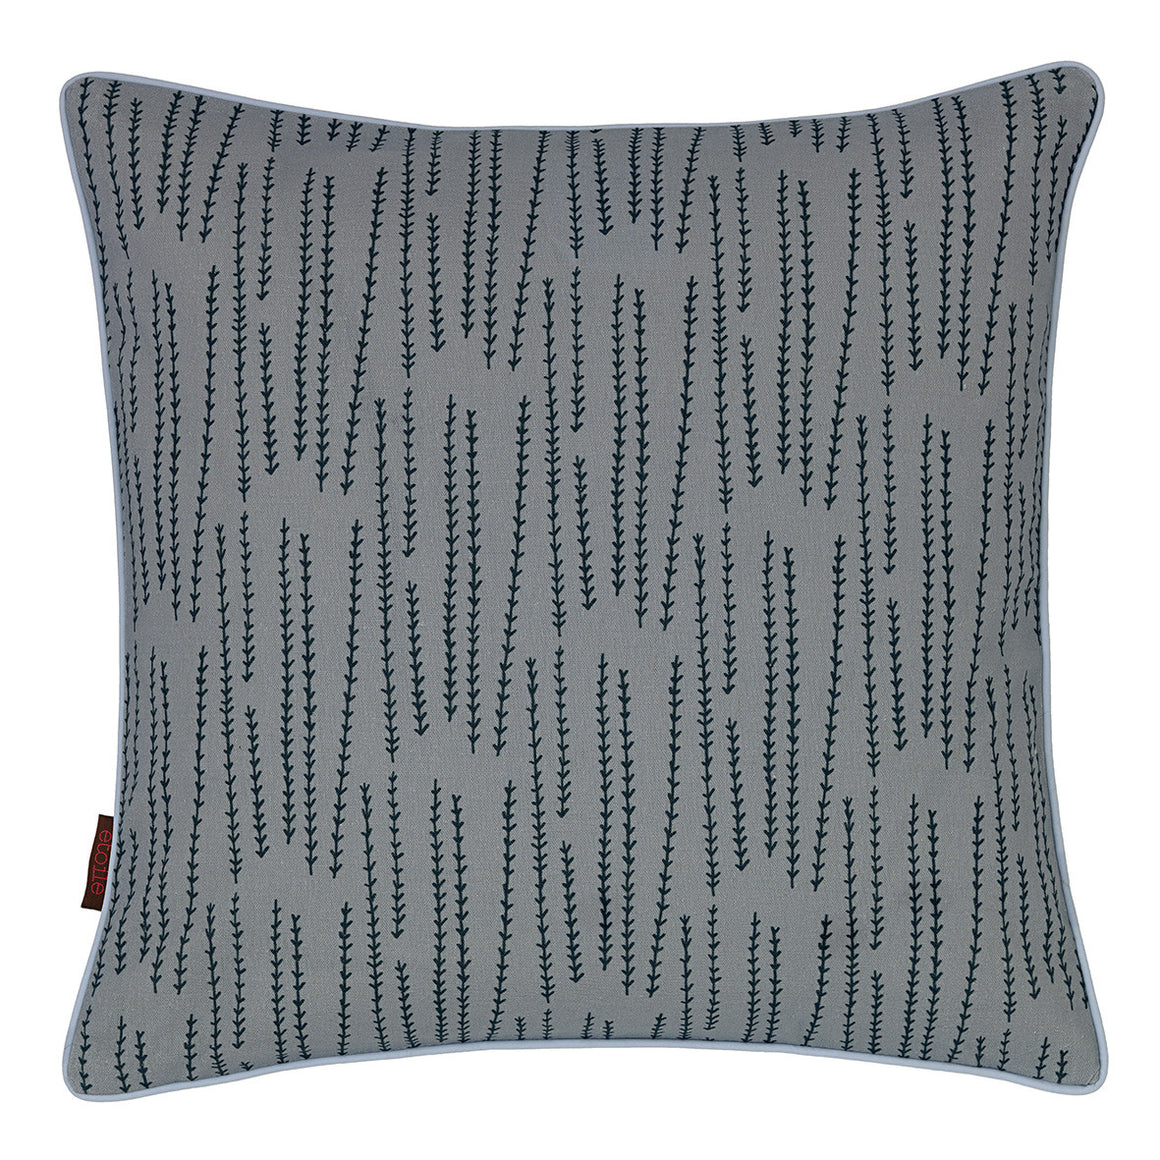 Graphic Rosemary Pattern Linen Union Printed Cushion in Winter Blue 45x45cm